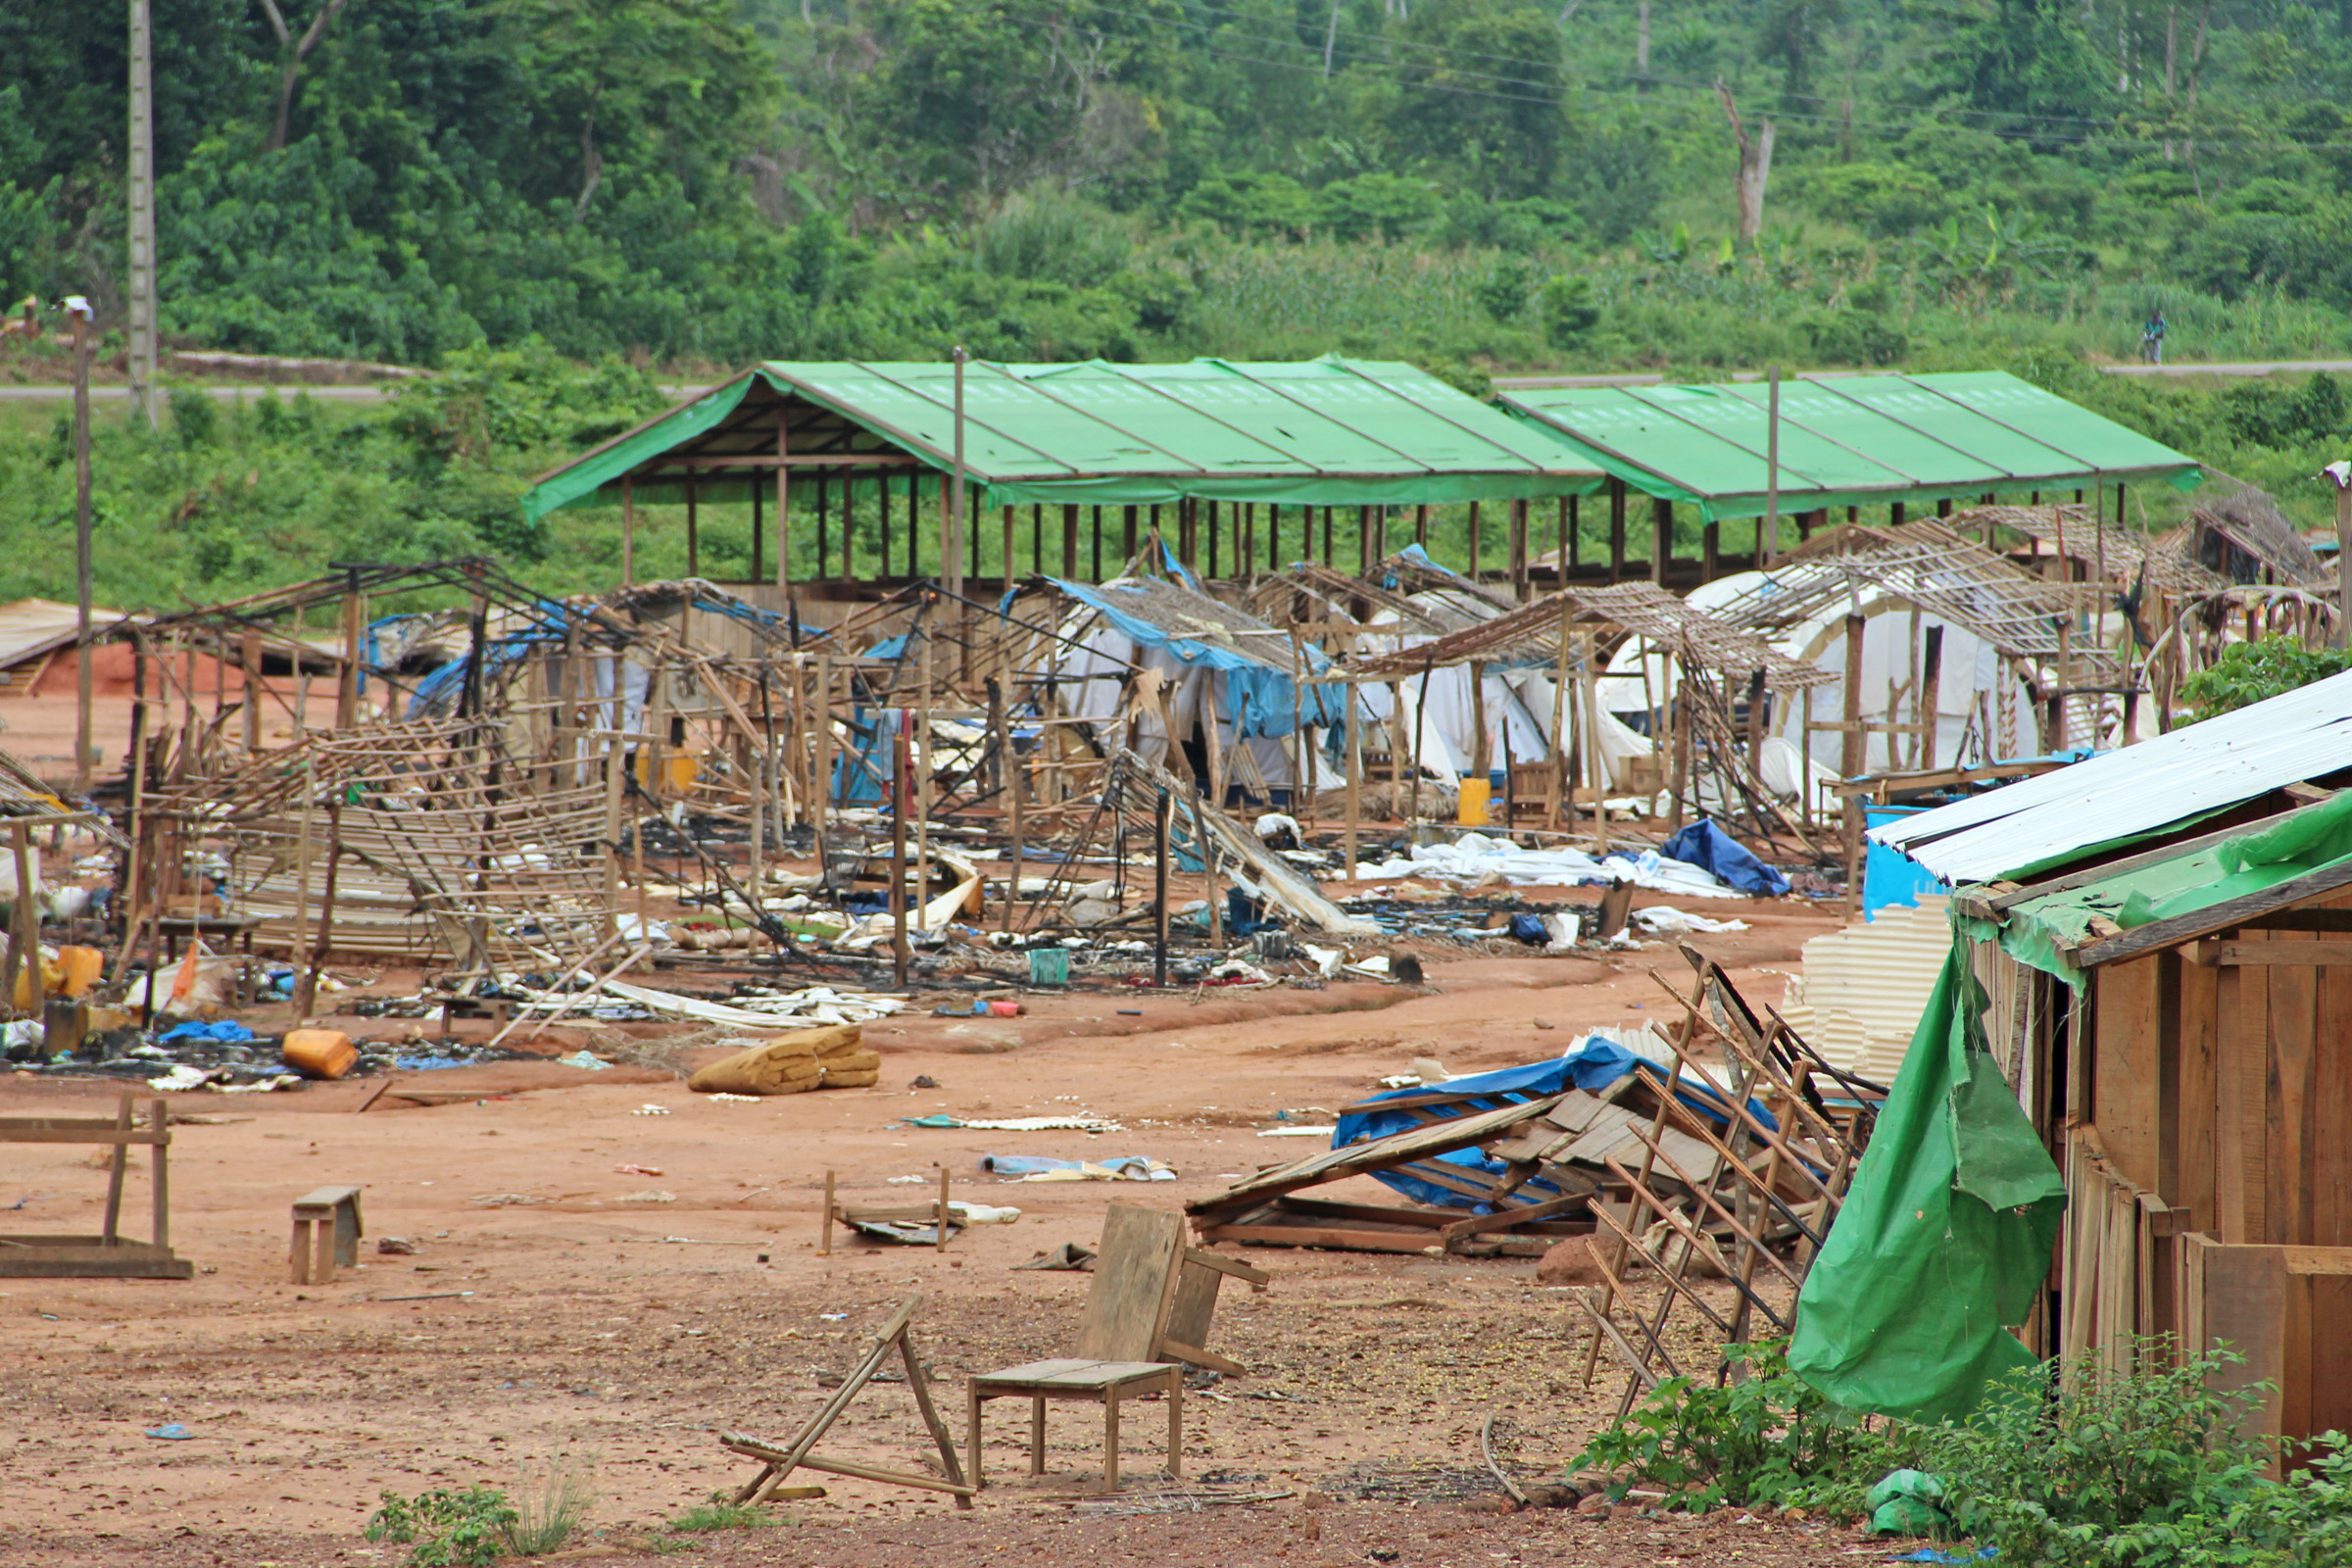 Nahibly IDP camp in western Côte d'Ivoire ravaged and torched on 20 July 2012 by a huge mob of up to thousand people. Six IDPs were killed and dozens wounded in the raid that highlighted the insecurity in the country's western region